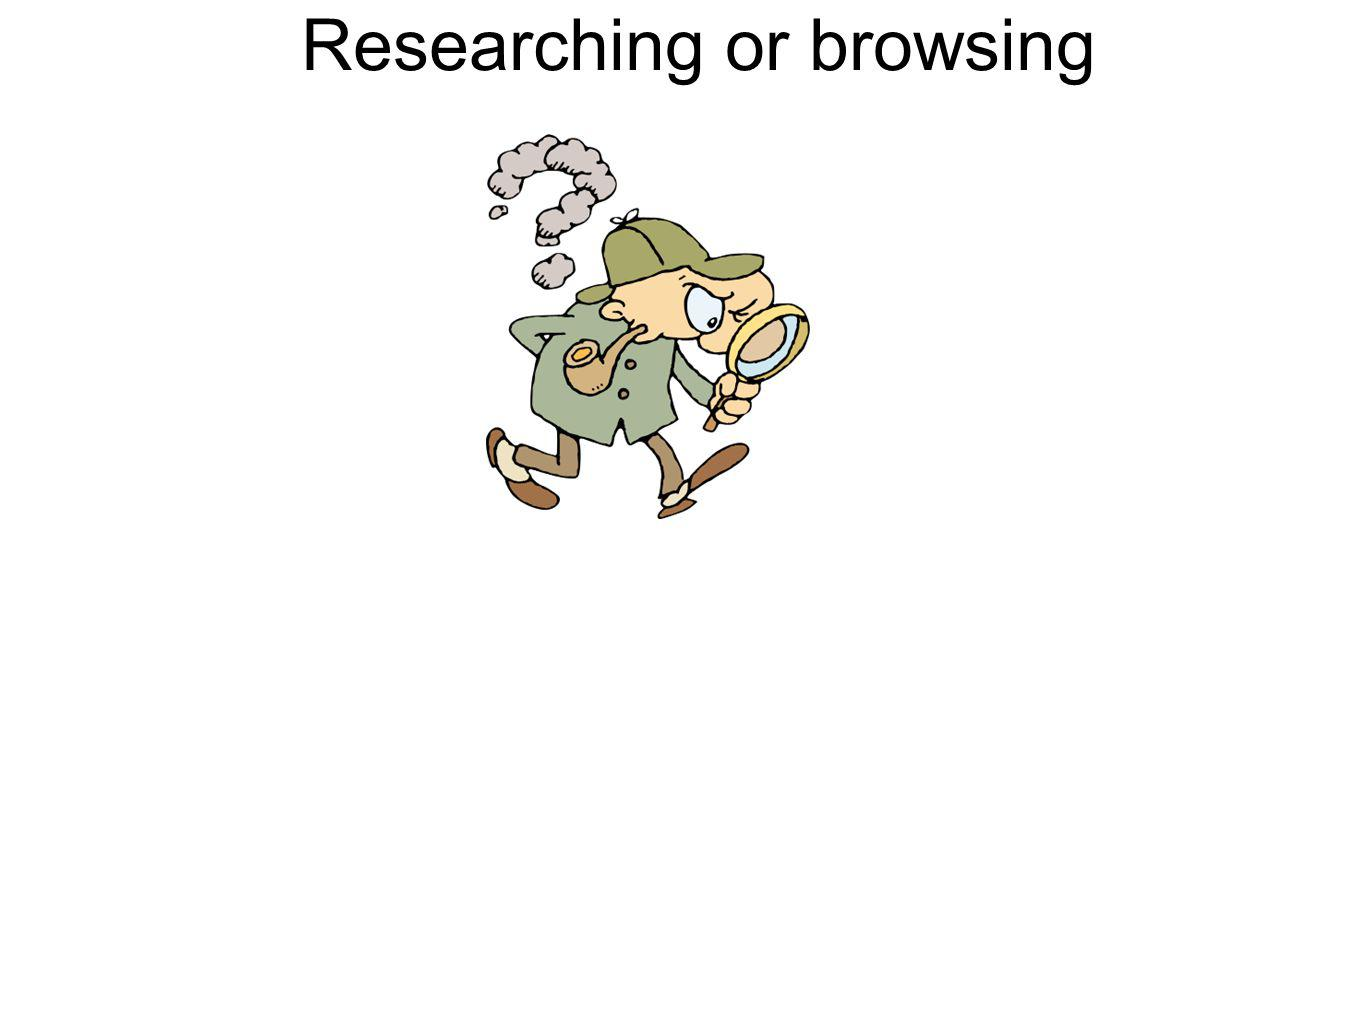 Researching or browsing